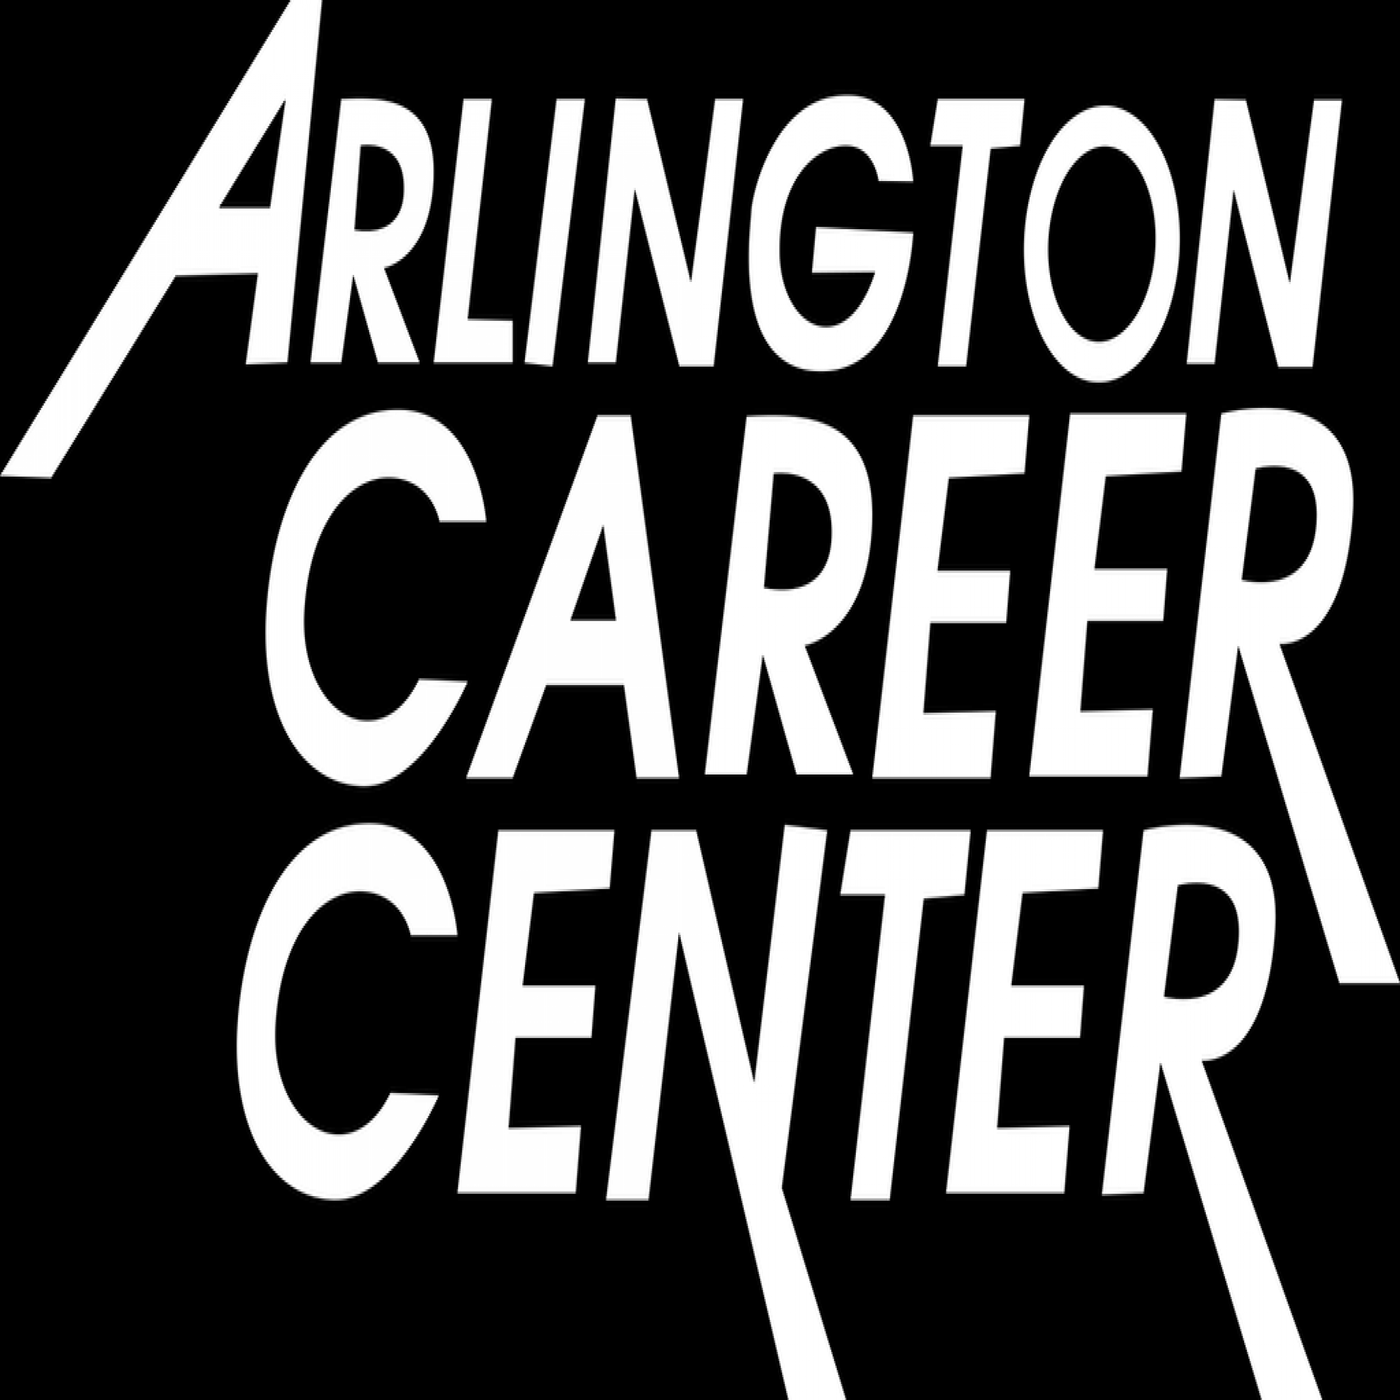 Arlington Career Center >> Welcome To The Arlington Career Center Hispanic Heritage